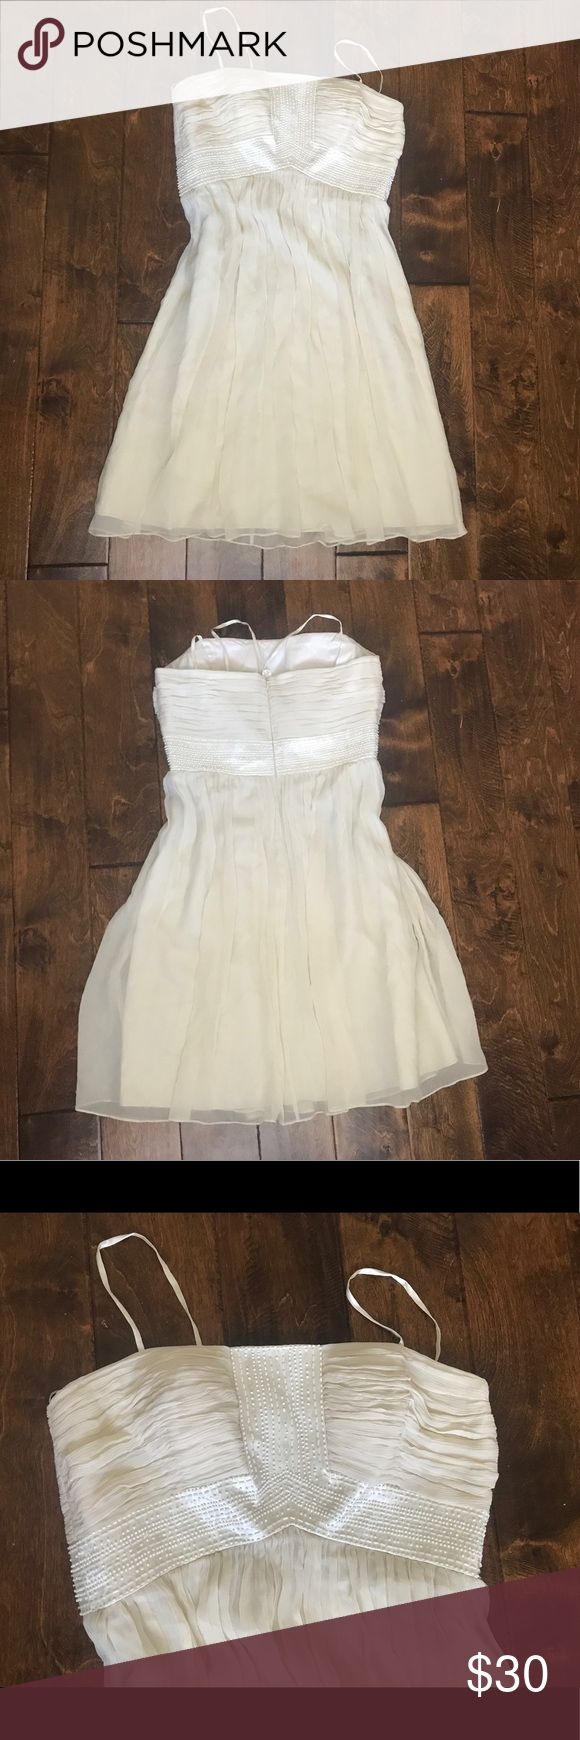 Maggy London formal dress Beautiful cream formal dress by Maggy London. Sz 12, 100% Silk. Used but still in great condition. No stains or rips. Reasonable offers welcome 🤗 Maggy London Dresses Midi